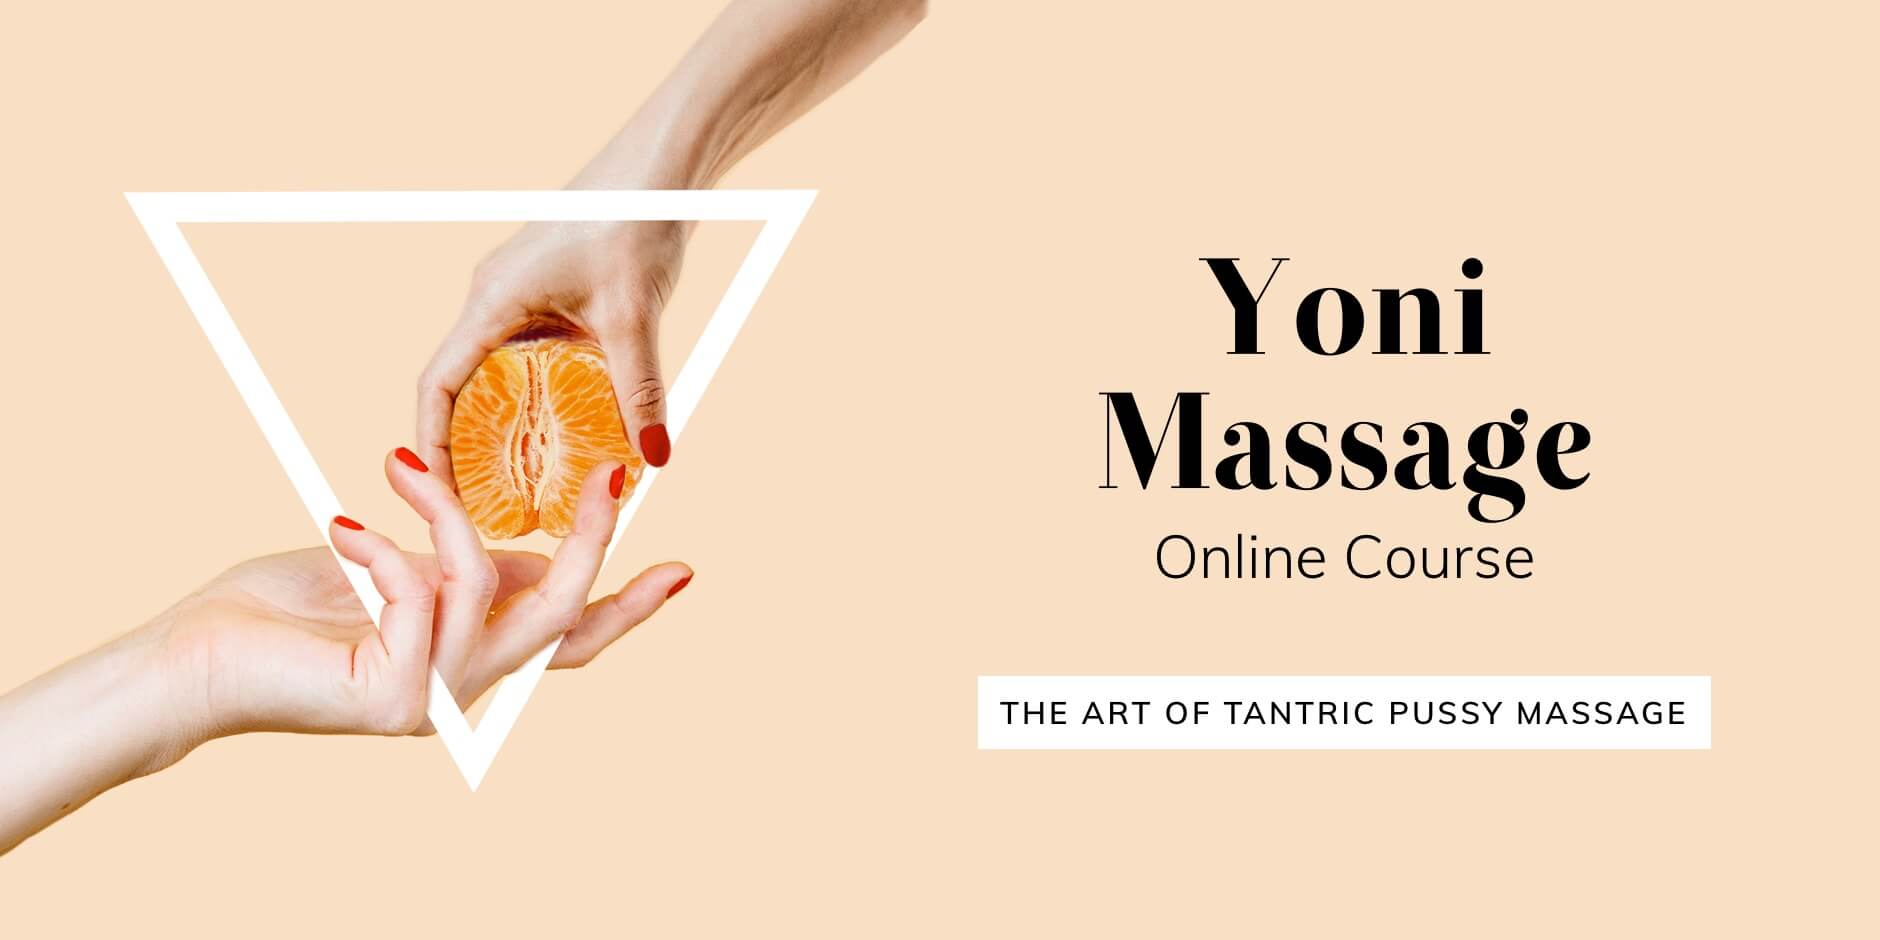 The Art of Tantric Pussy Massage